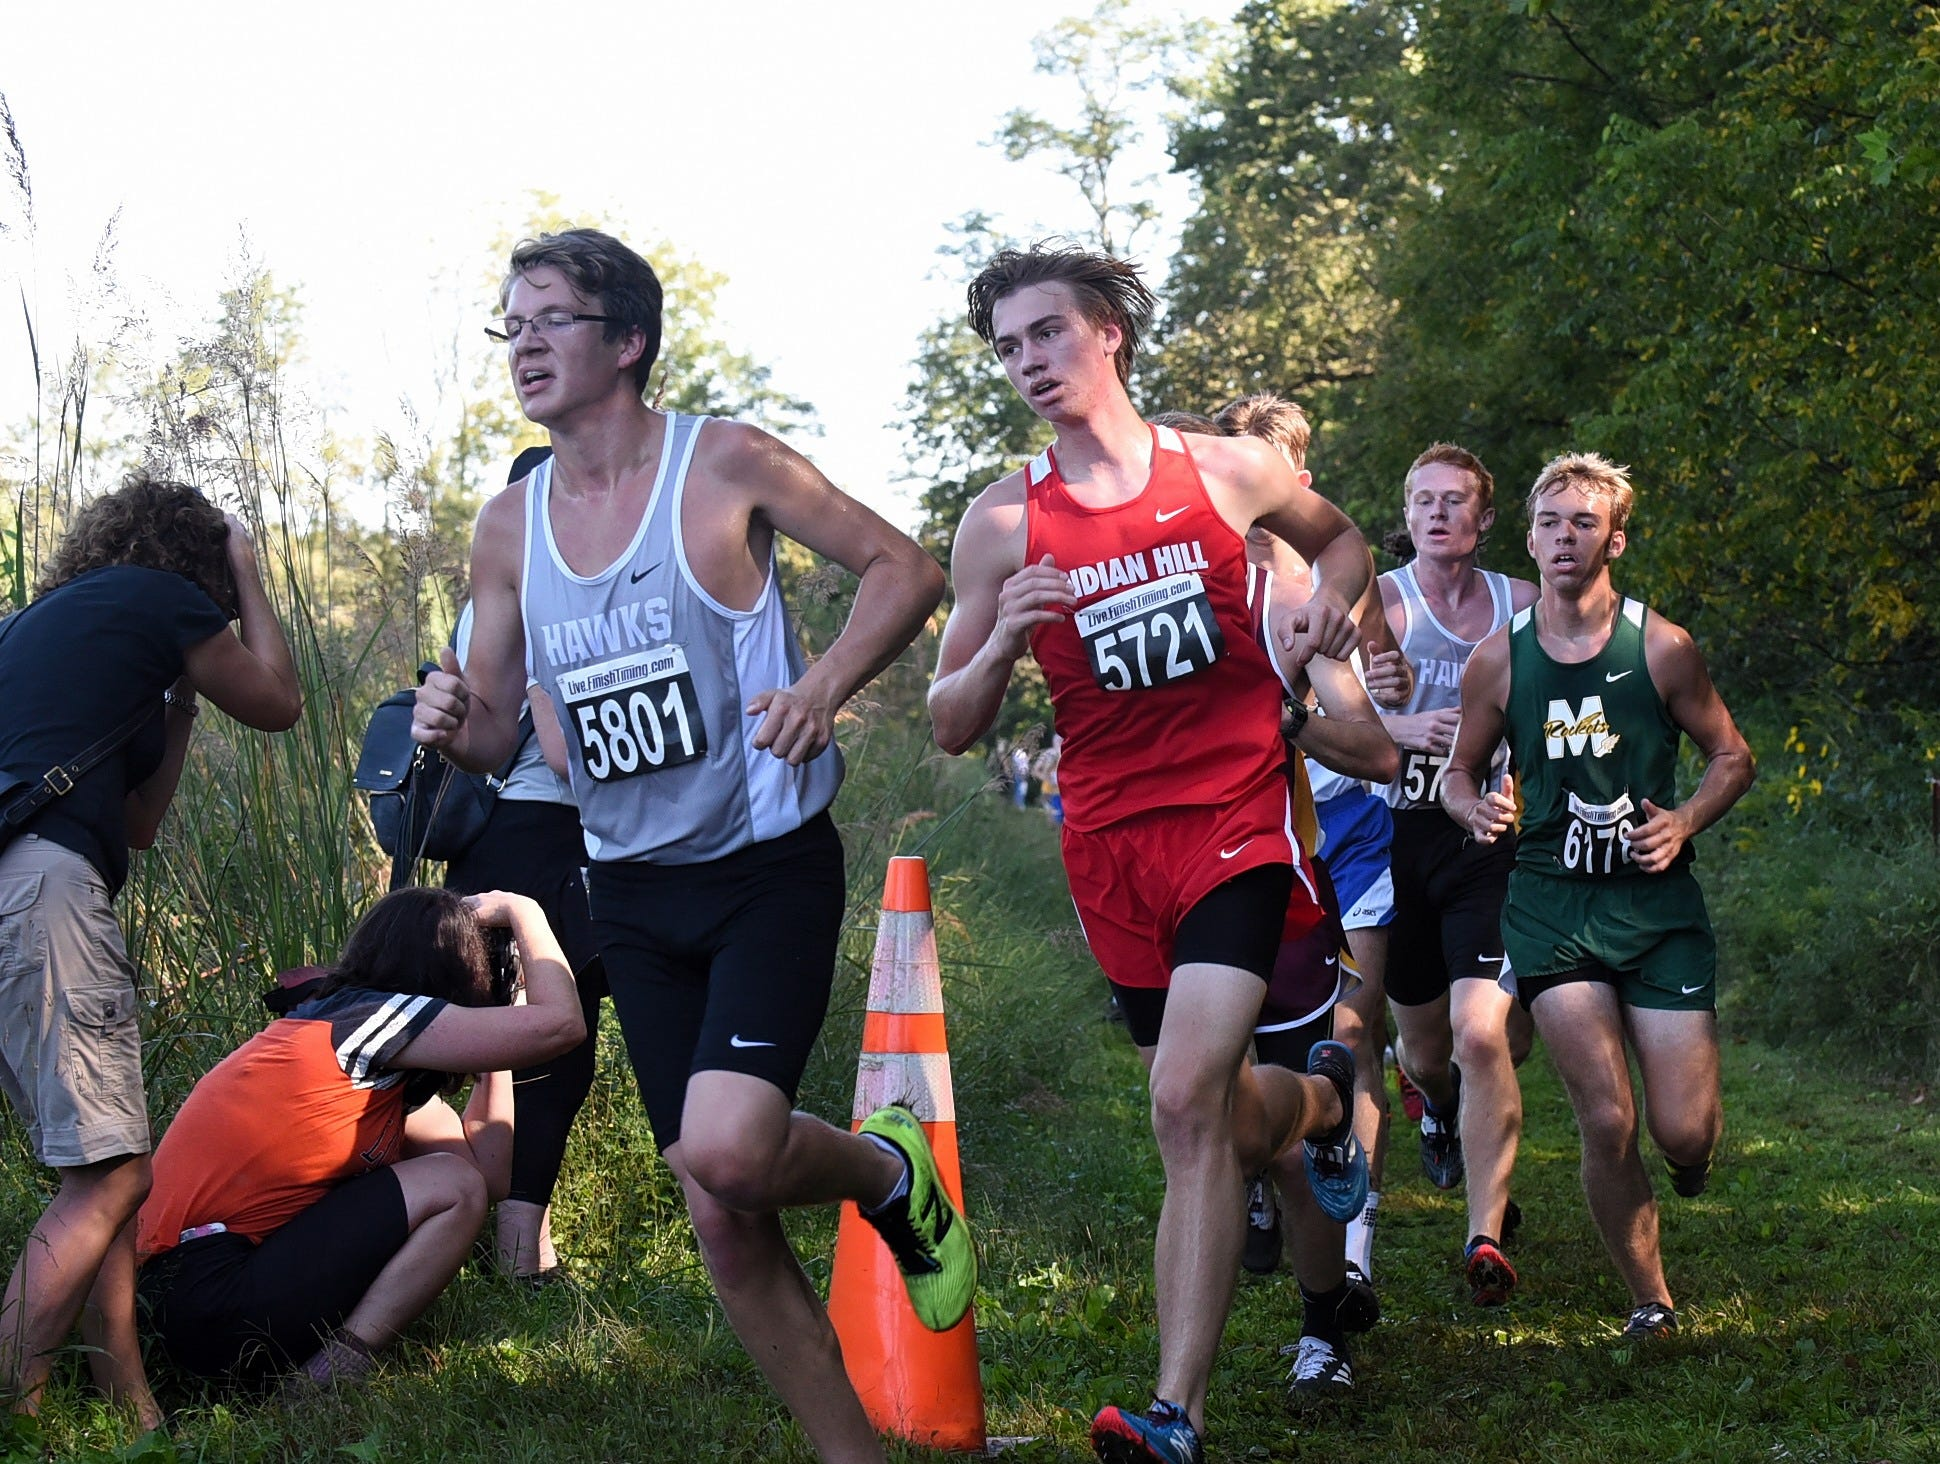 Lakota East's Troy Temelis, Indian Hill's Tommy Tauer and Hunter Evans of McNicholas take a hard turn in the Boys varsity 5K race at the 2018 Milford Cross Country Invitational, Sept. 15, 2018.